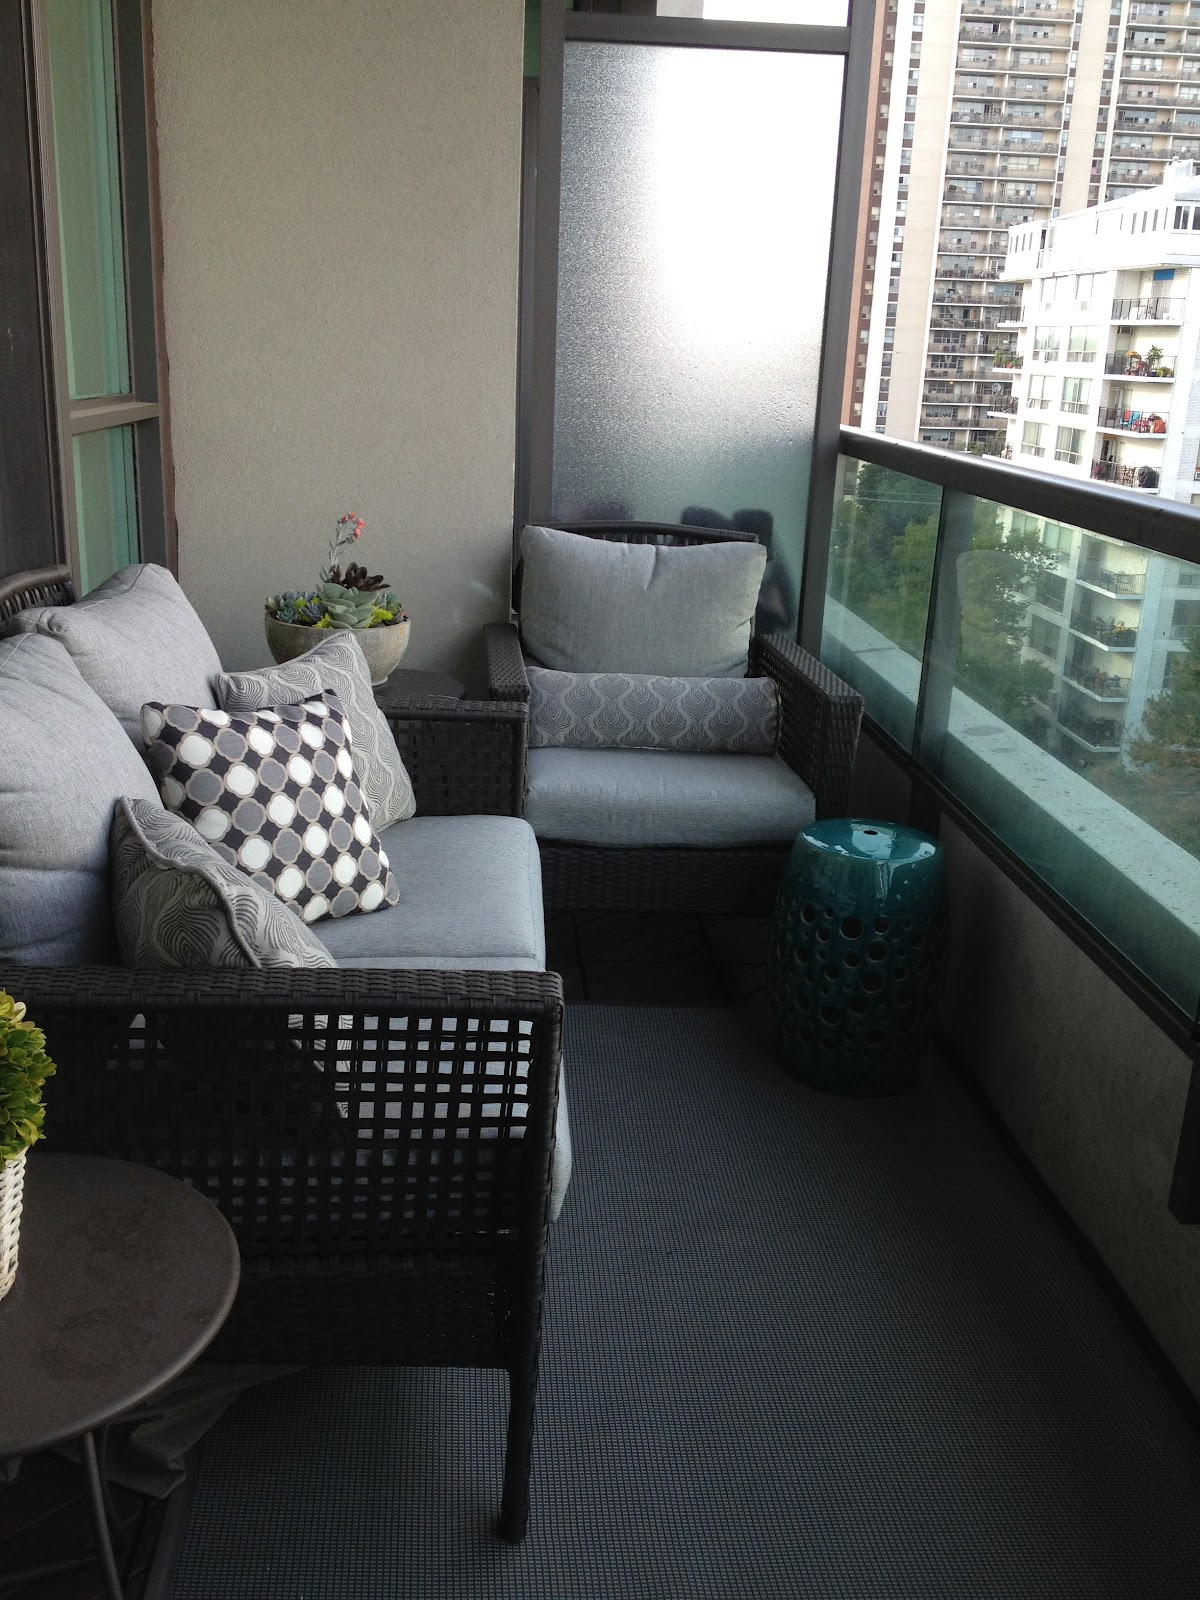 Patio chairs for small balcony. concrete patio design ideas patio ...